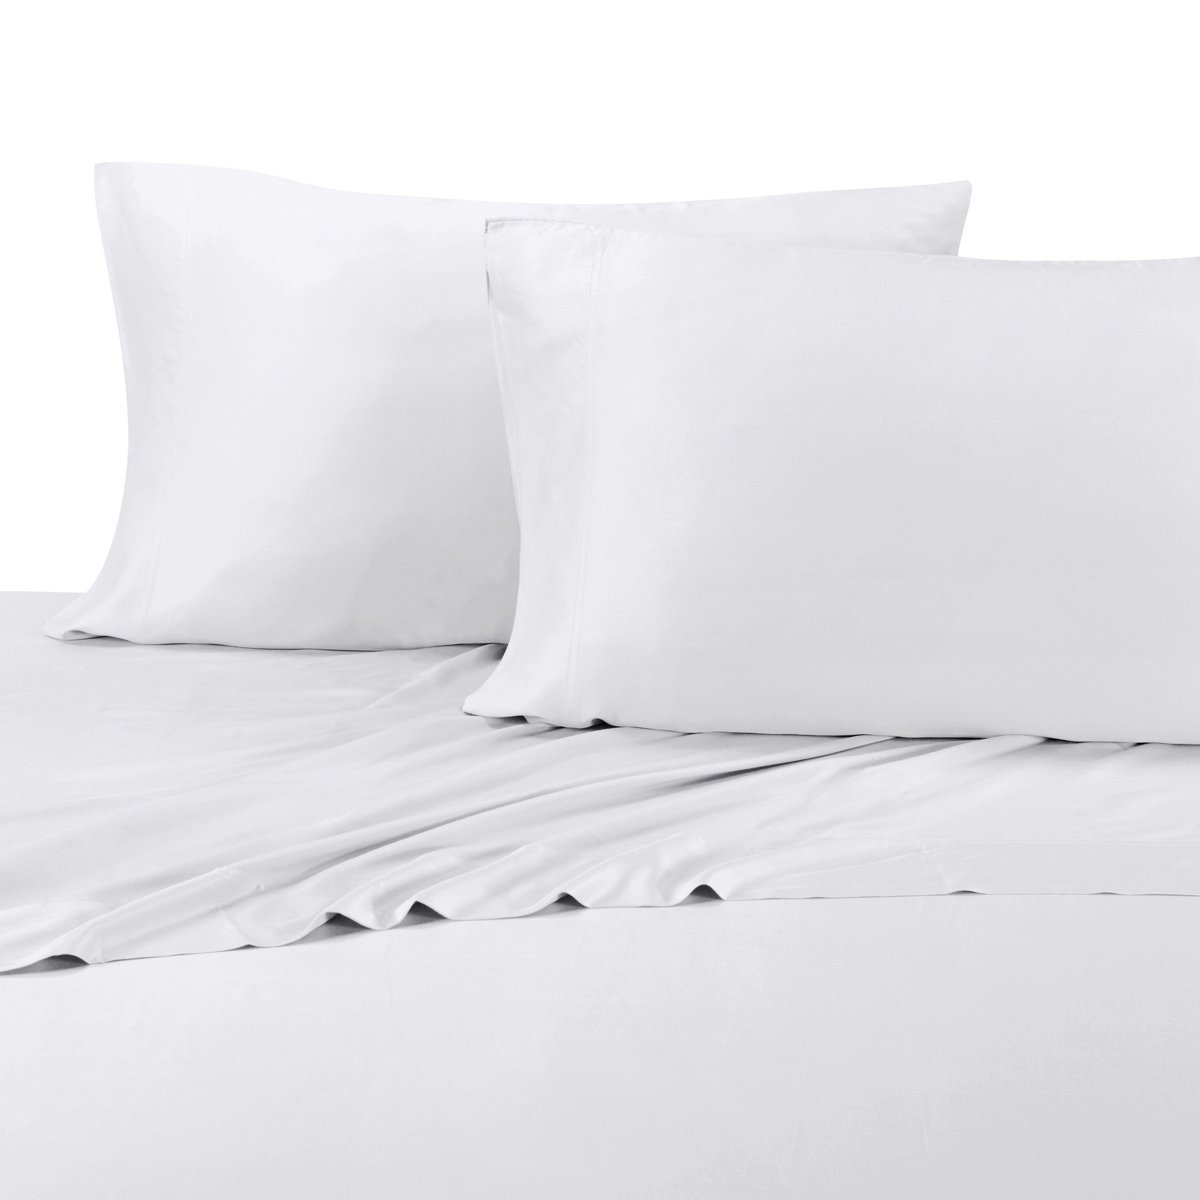 Royal Hotel Bamboo Sheets Review